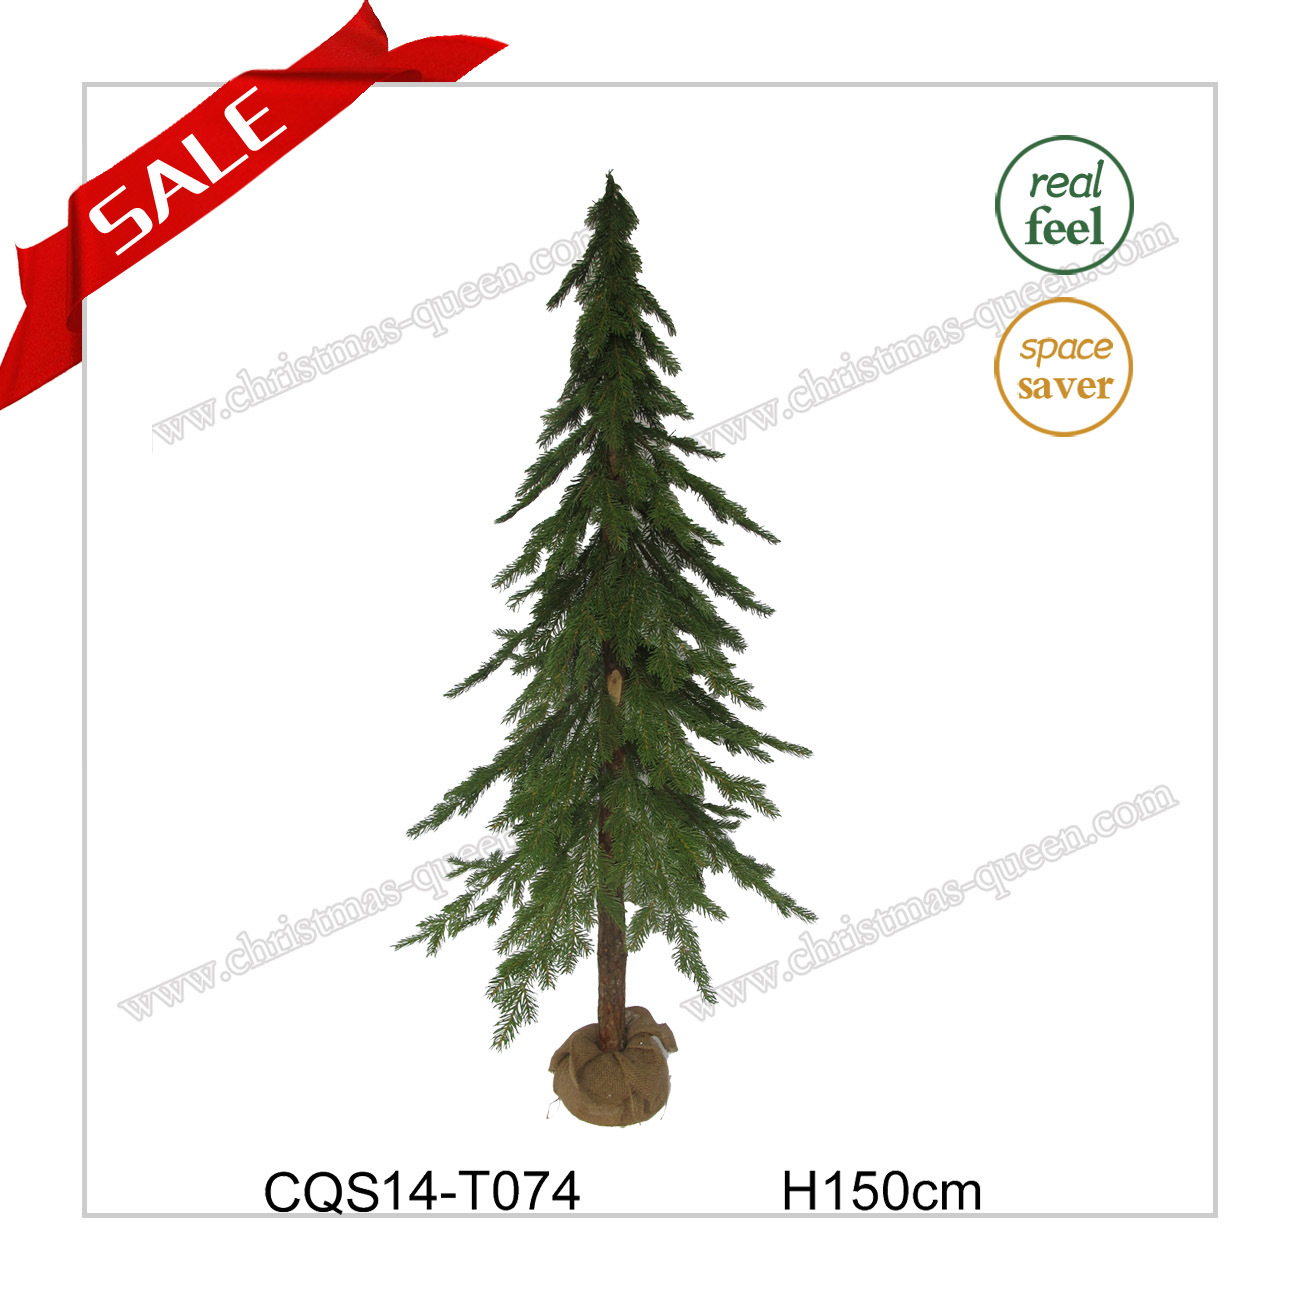 H120cm Indoor Cheapest Artificial Pine Needle Christmas Craft